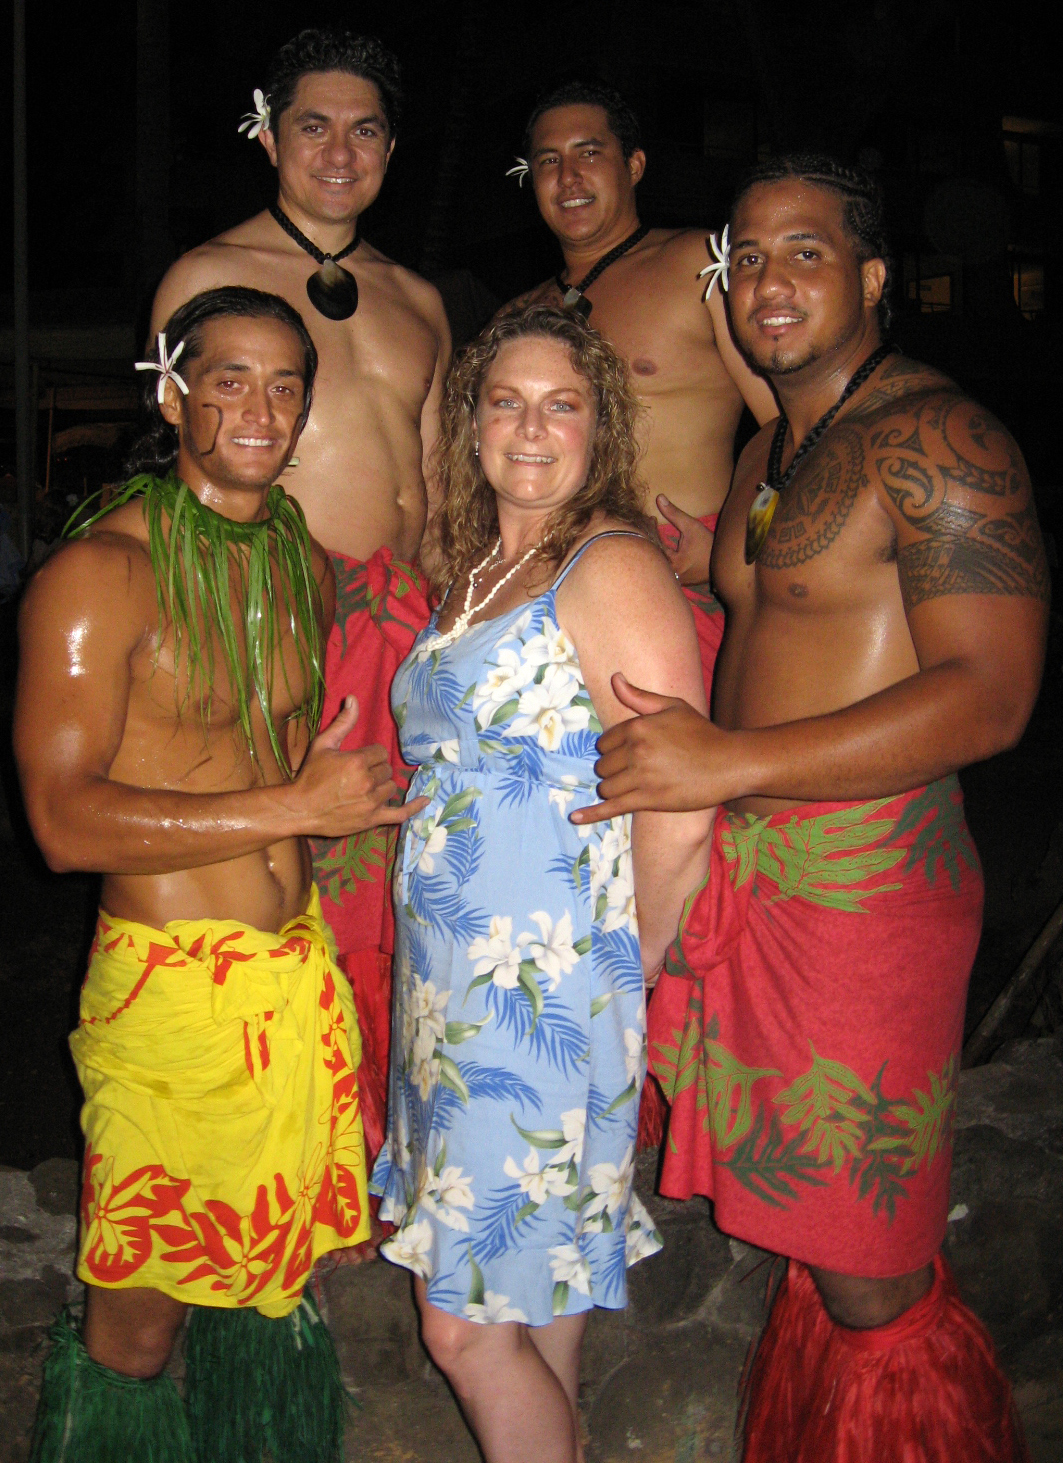 Me and the Luau Boys